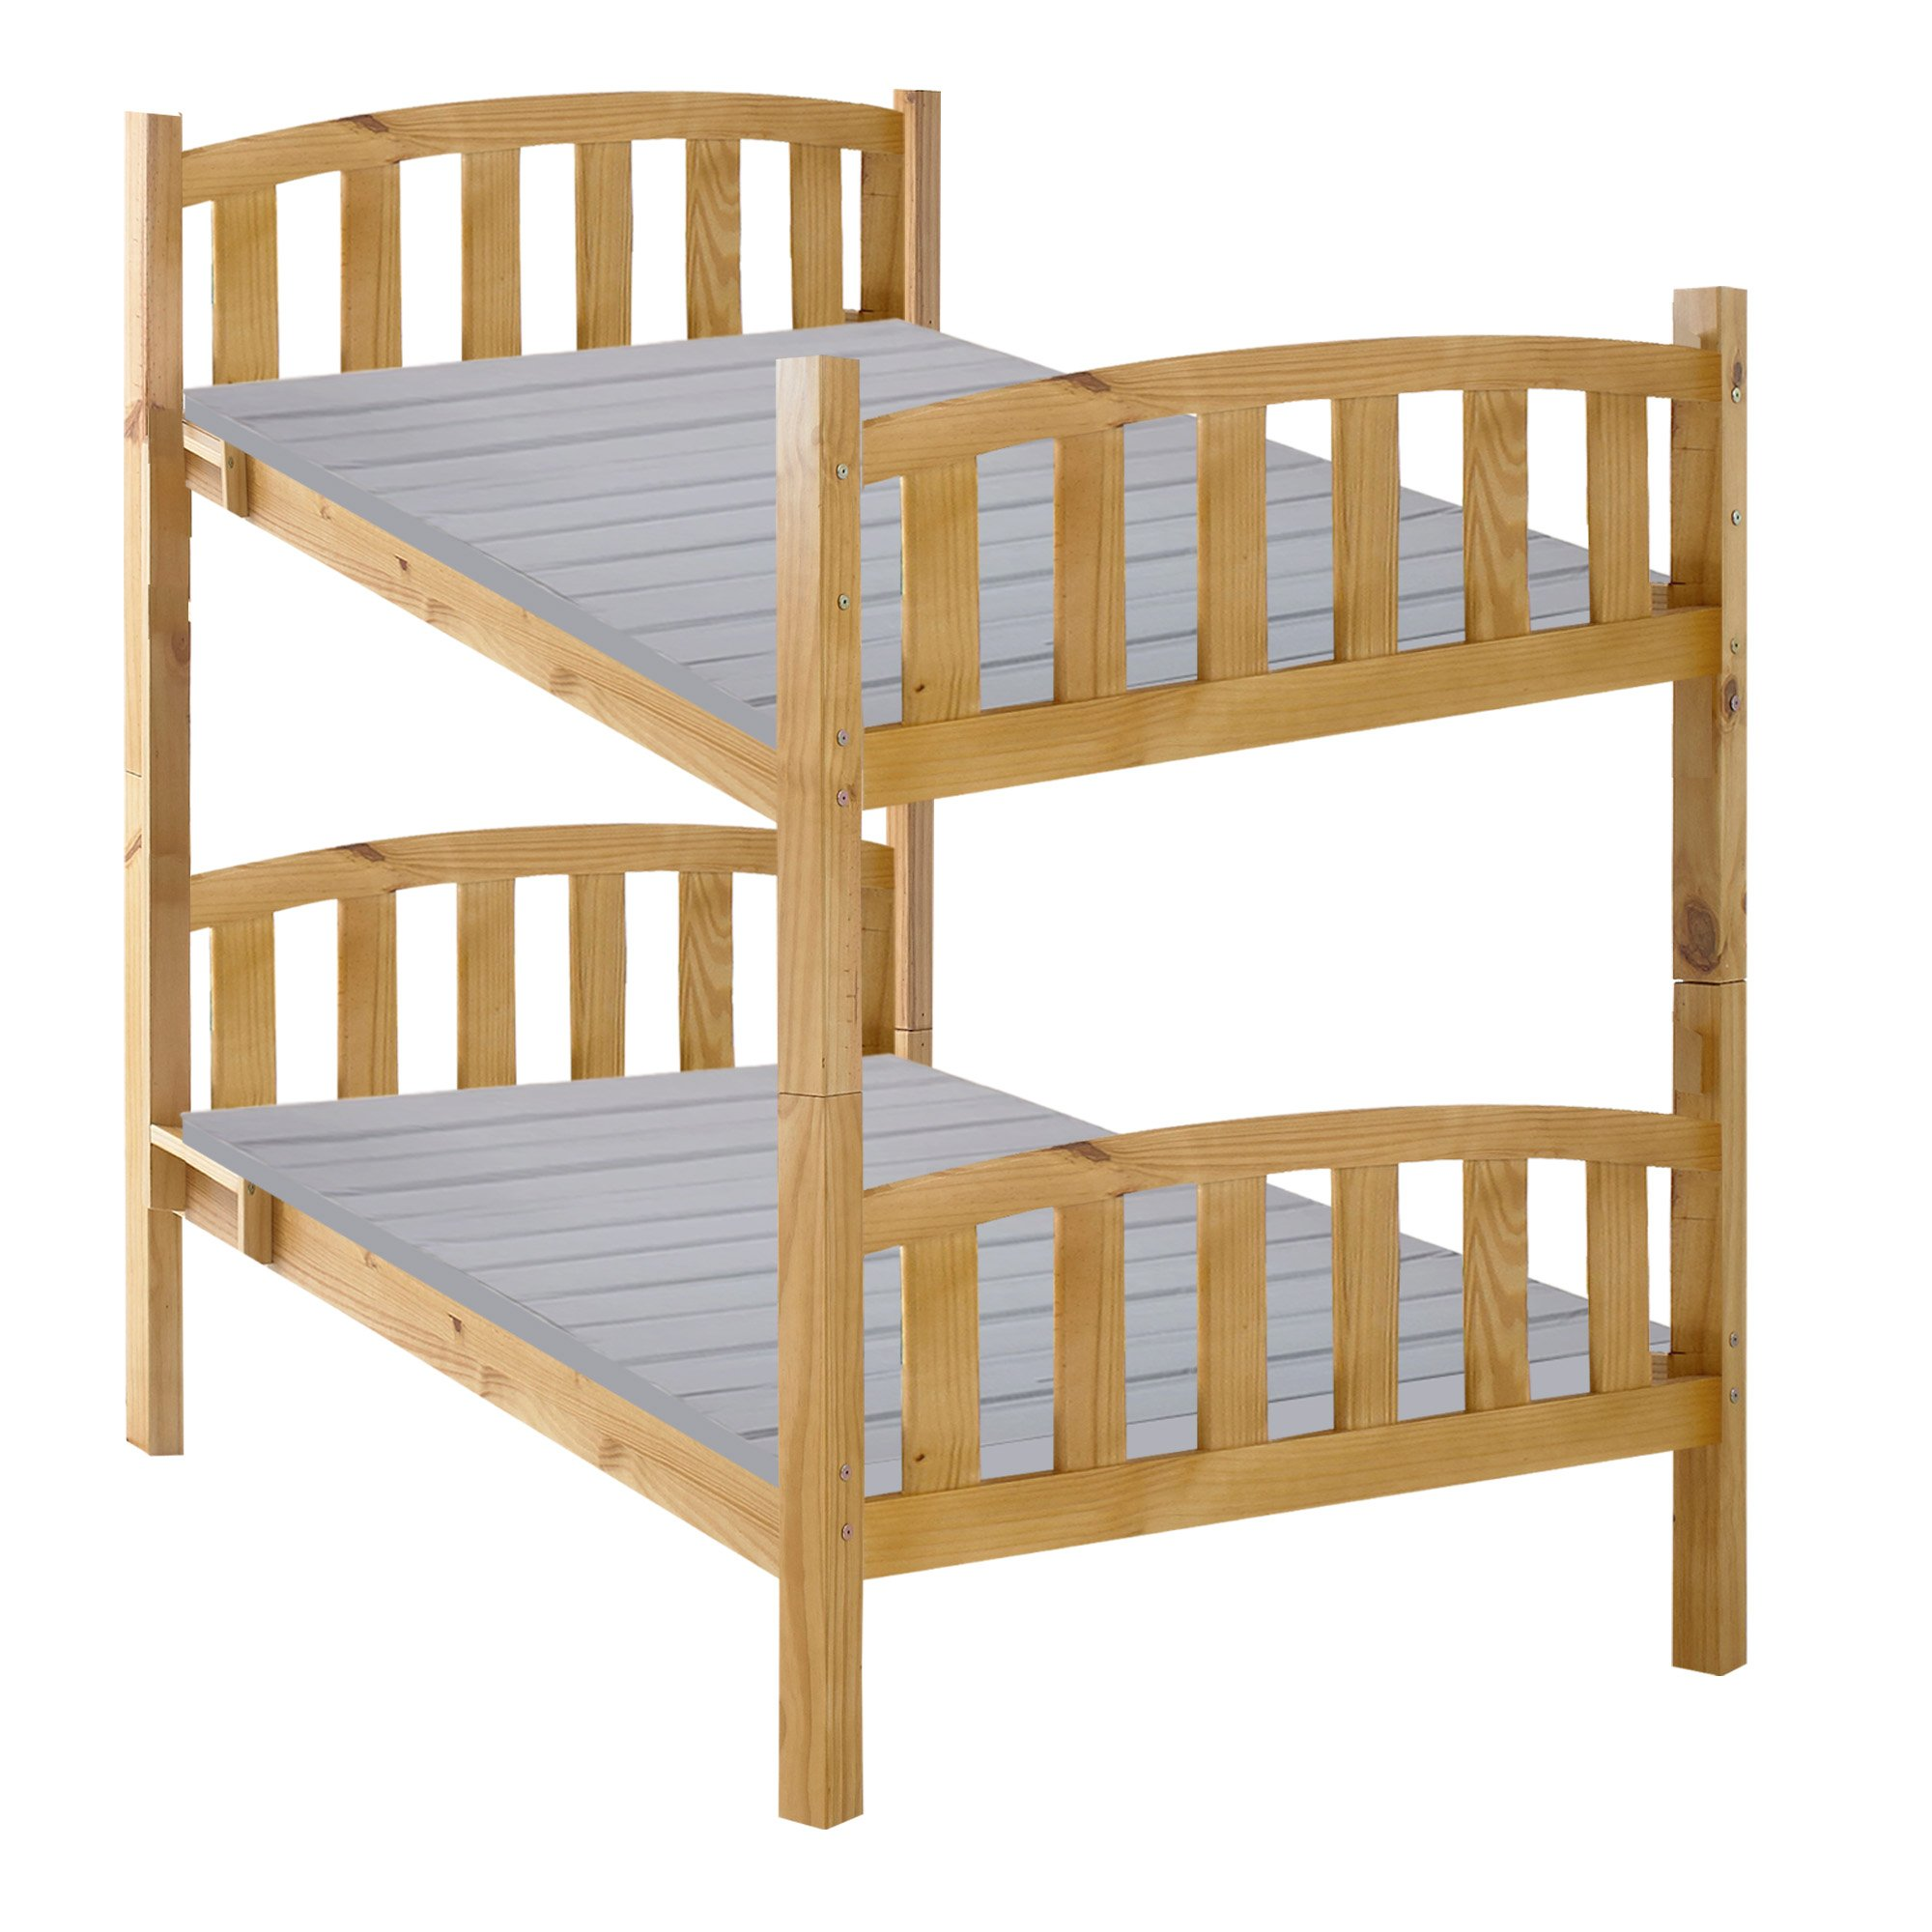 Greaton HCSBv-4/6 Heavy Duty Mattress Support Wooden Bunkie Board/Slats with Cover, Full Size by Greaton (Image #4)